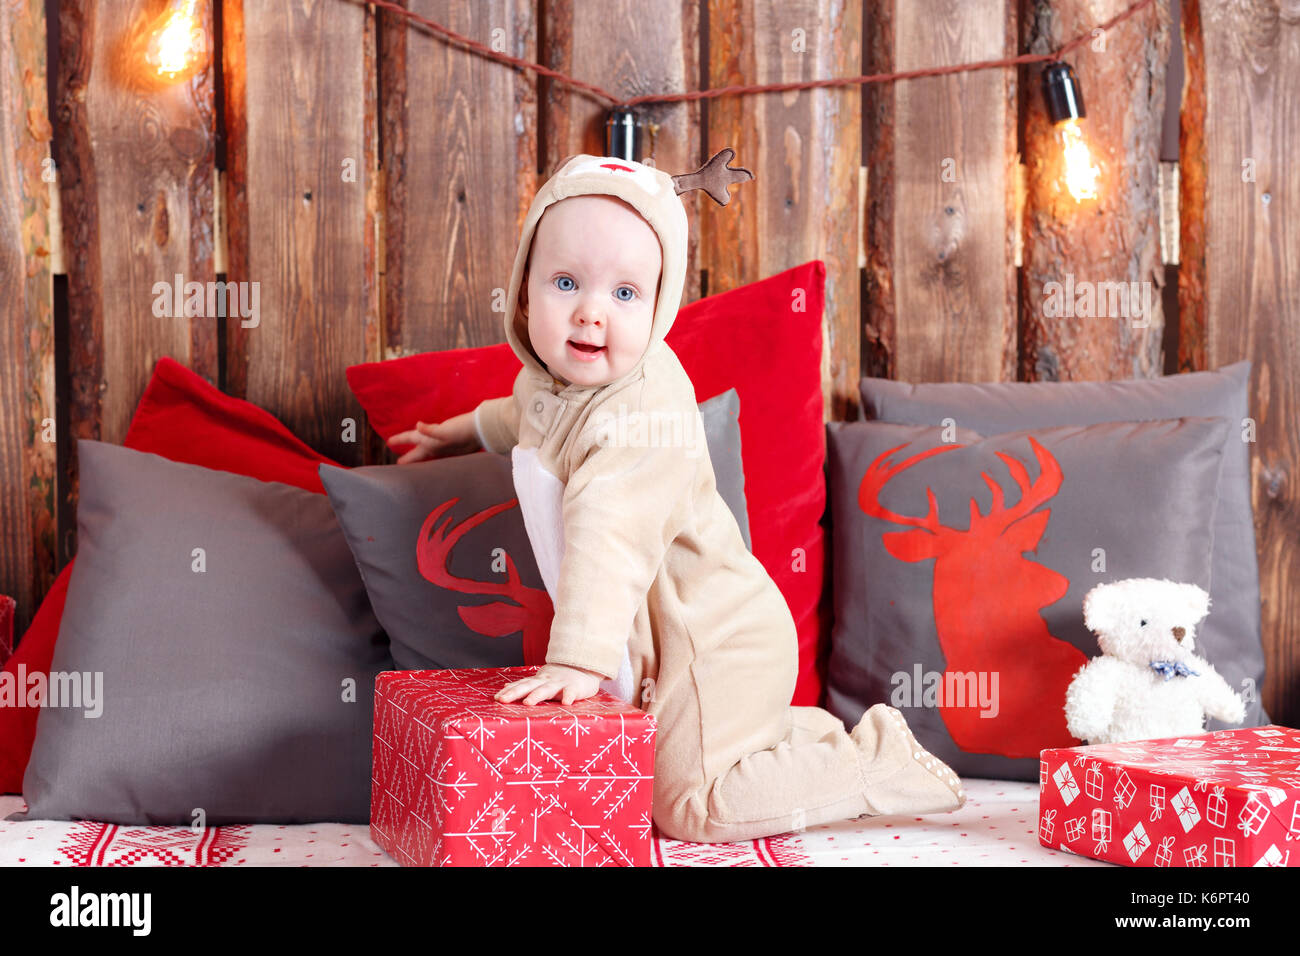 Christmas evening. Little girl sitting and unwraps gifts. coverall-reindeer costume - Stock Image